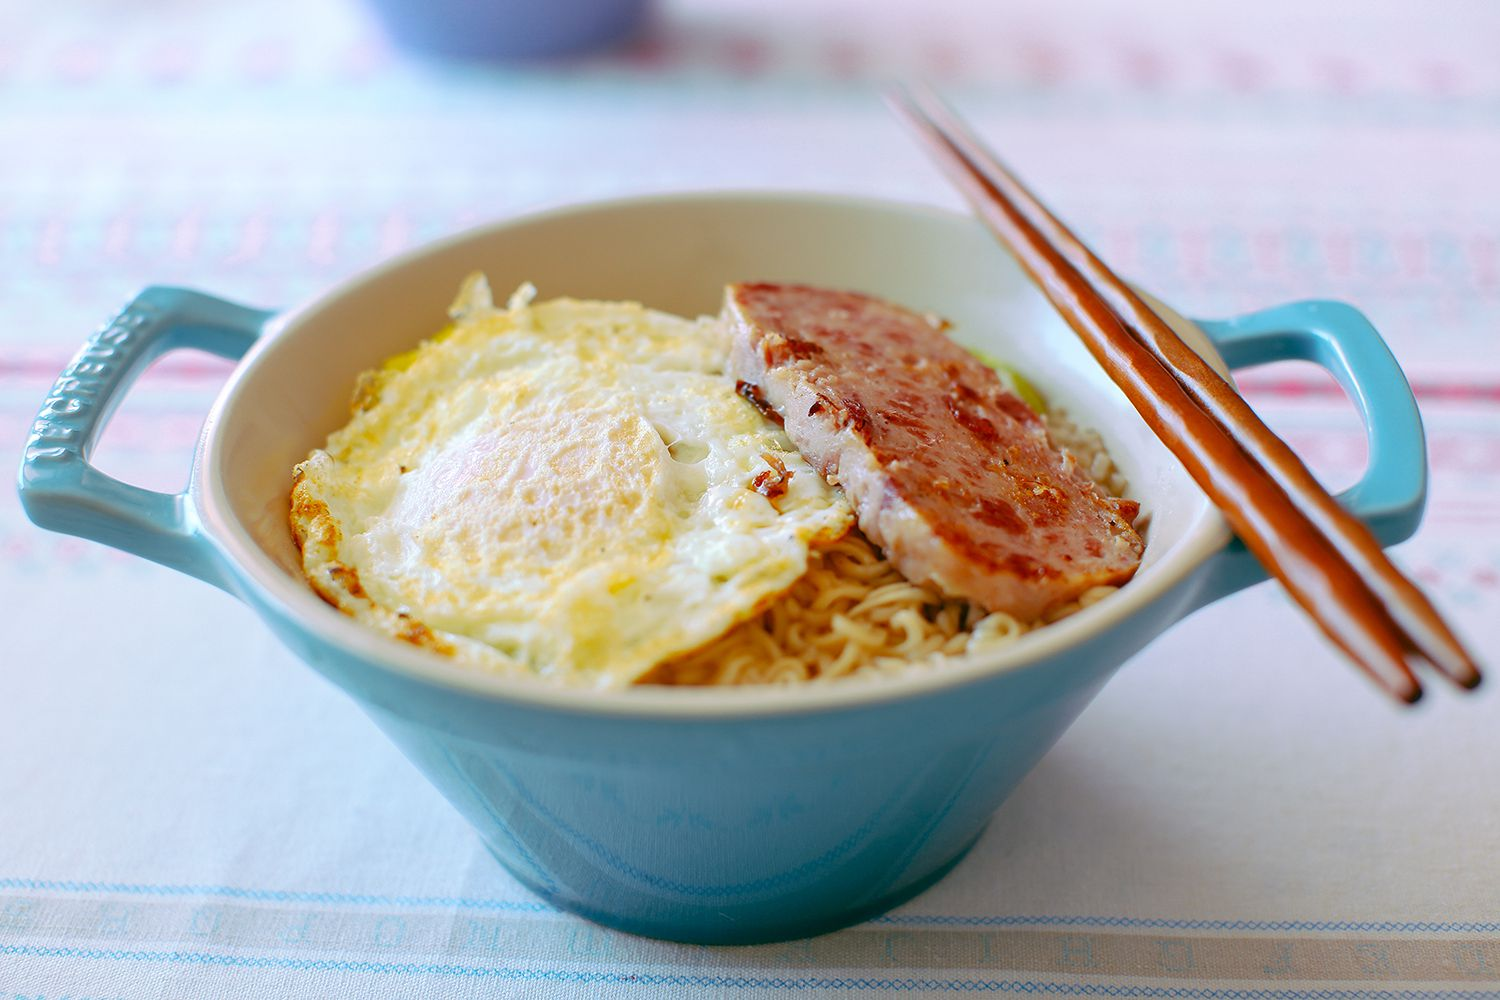 noodles with lunch meat and over-easy egg